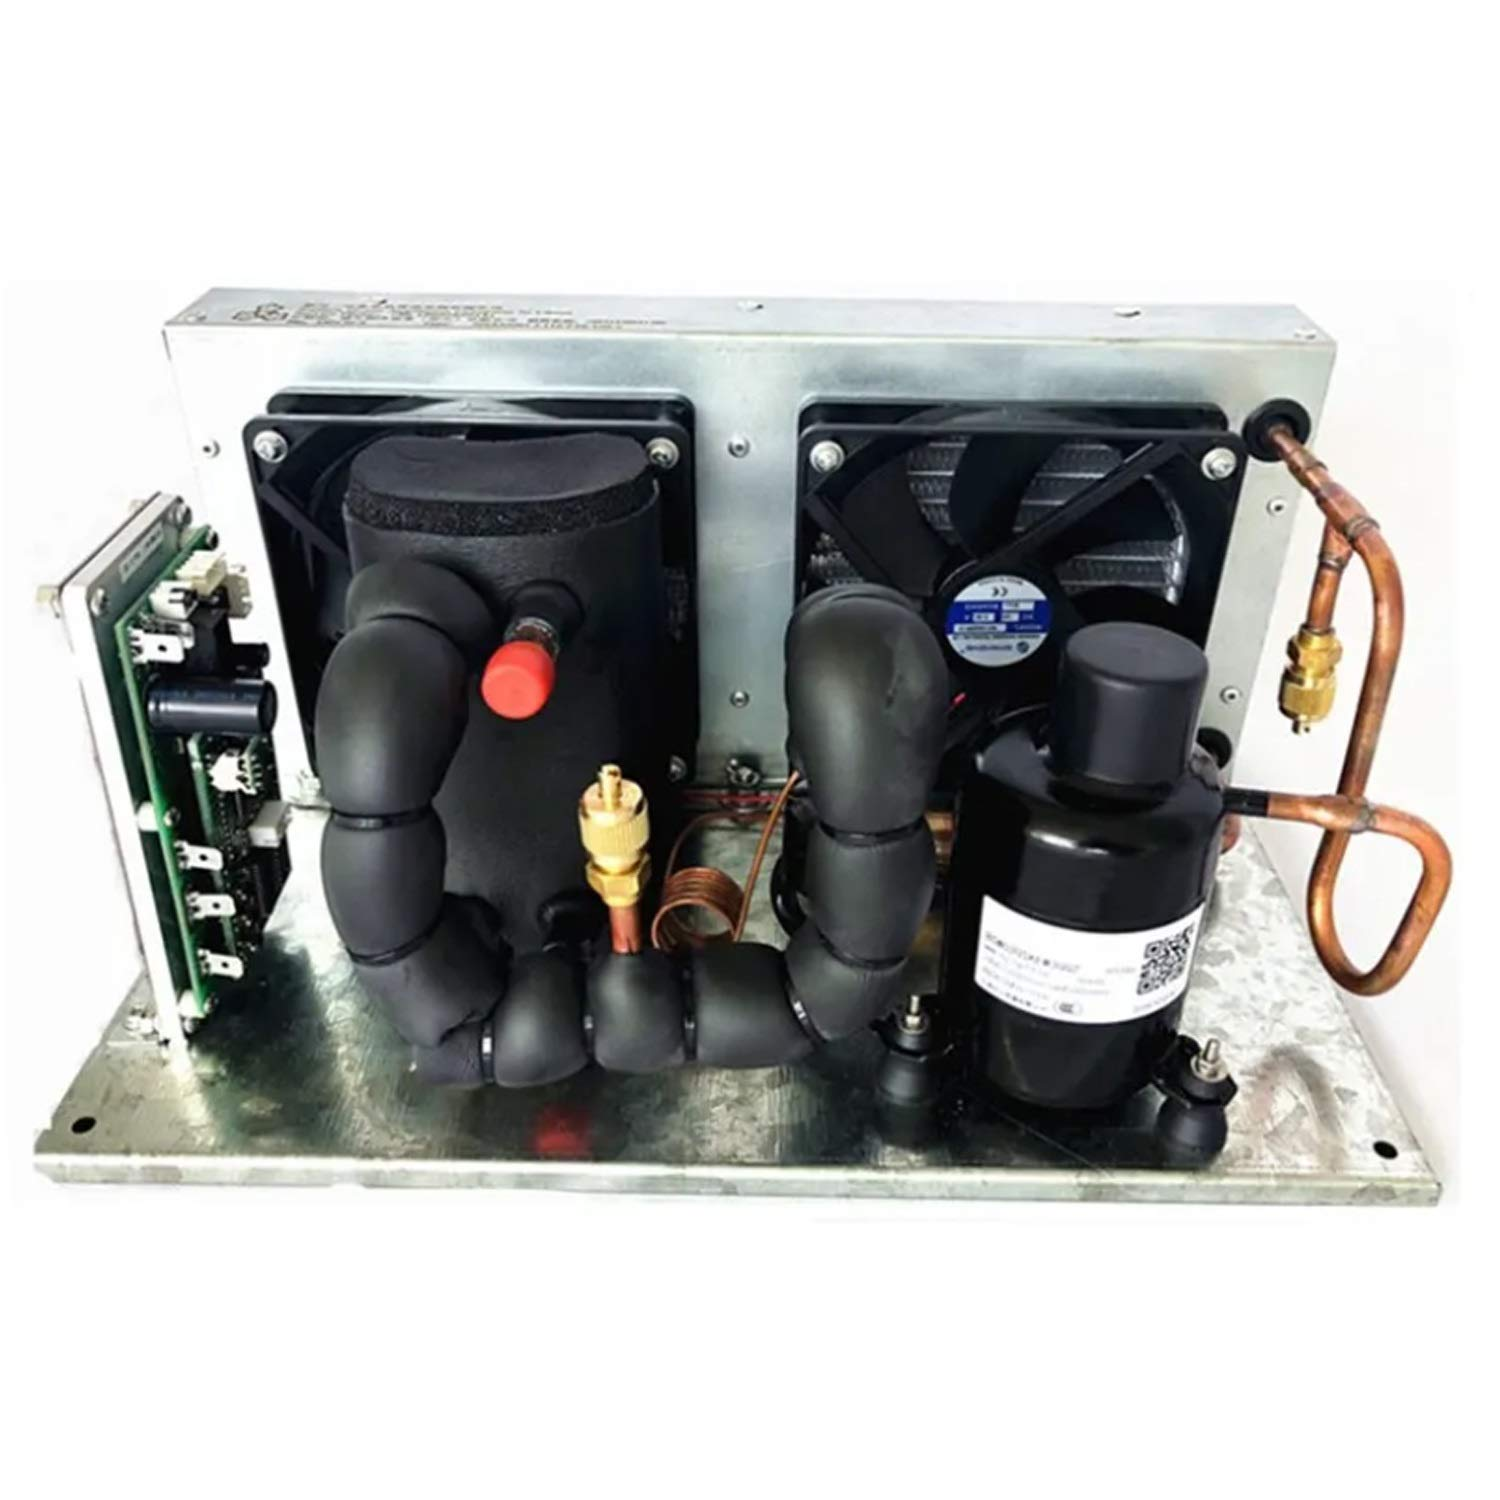 Shengjuanfeng Portable Cooling System Liquid Chiller Module DC 48V 137-455W Liquid Cooling System,P-Plate Liquid Chiller Module R134A Refrigerant Liquid Loop Cycling Refrigeration Small Cooling Unit by Shengjuanfeng